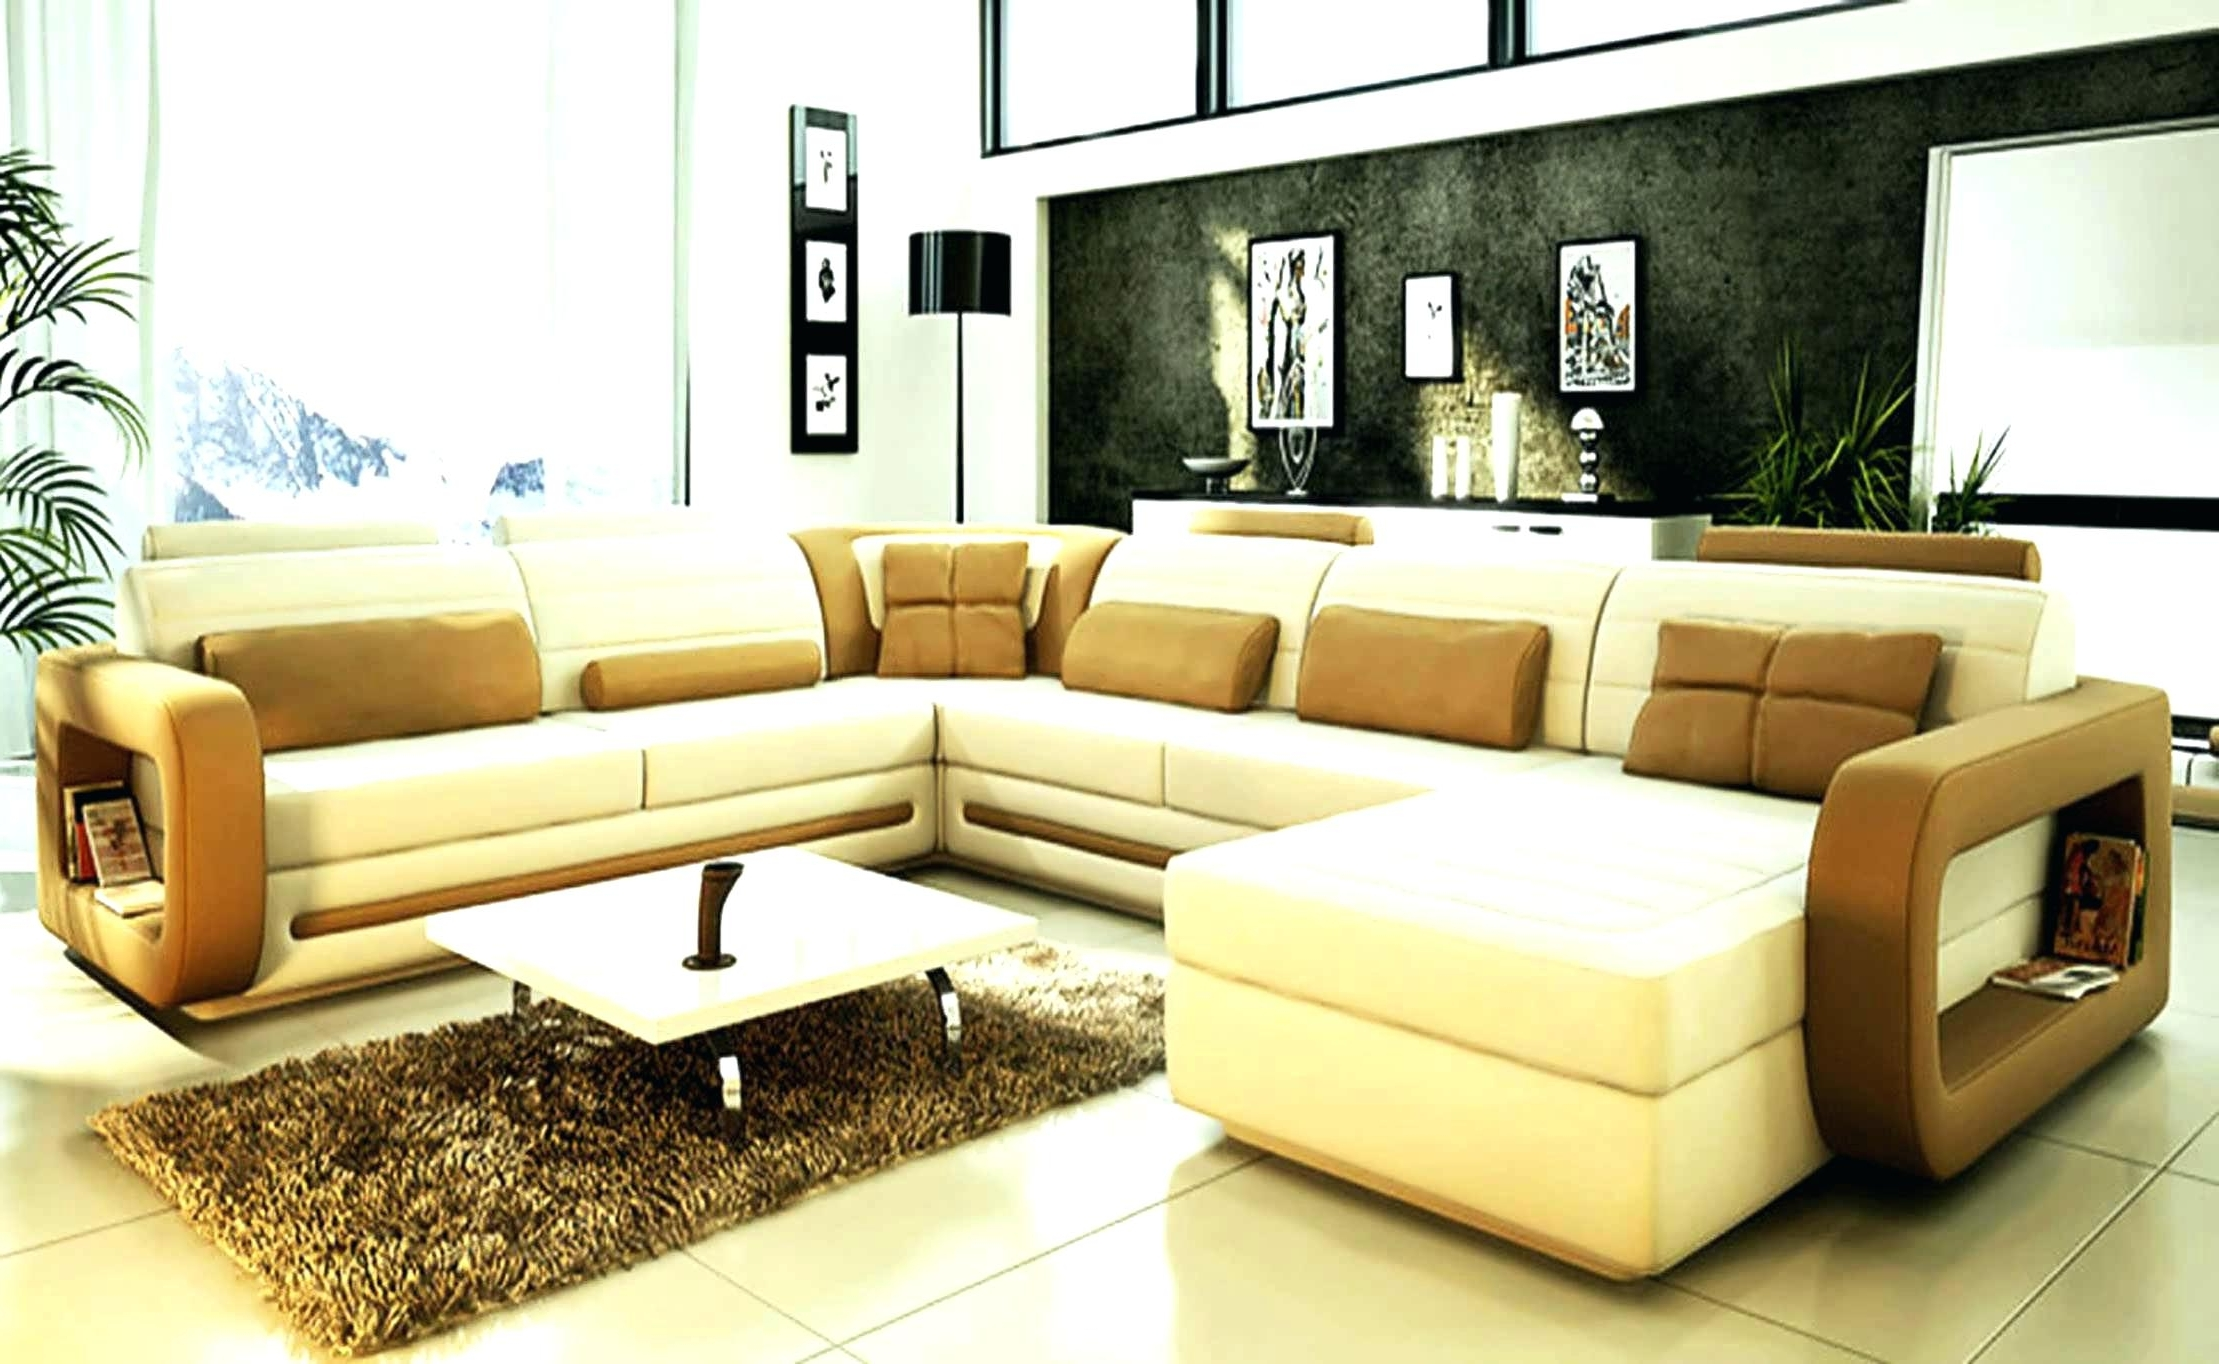 Cream Colored Sofas For Most Recent Cream Colored Sofa Pillows Throw Pillow Covers Table (View 4 of 20)